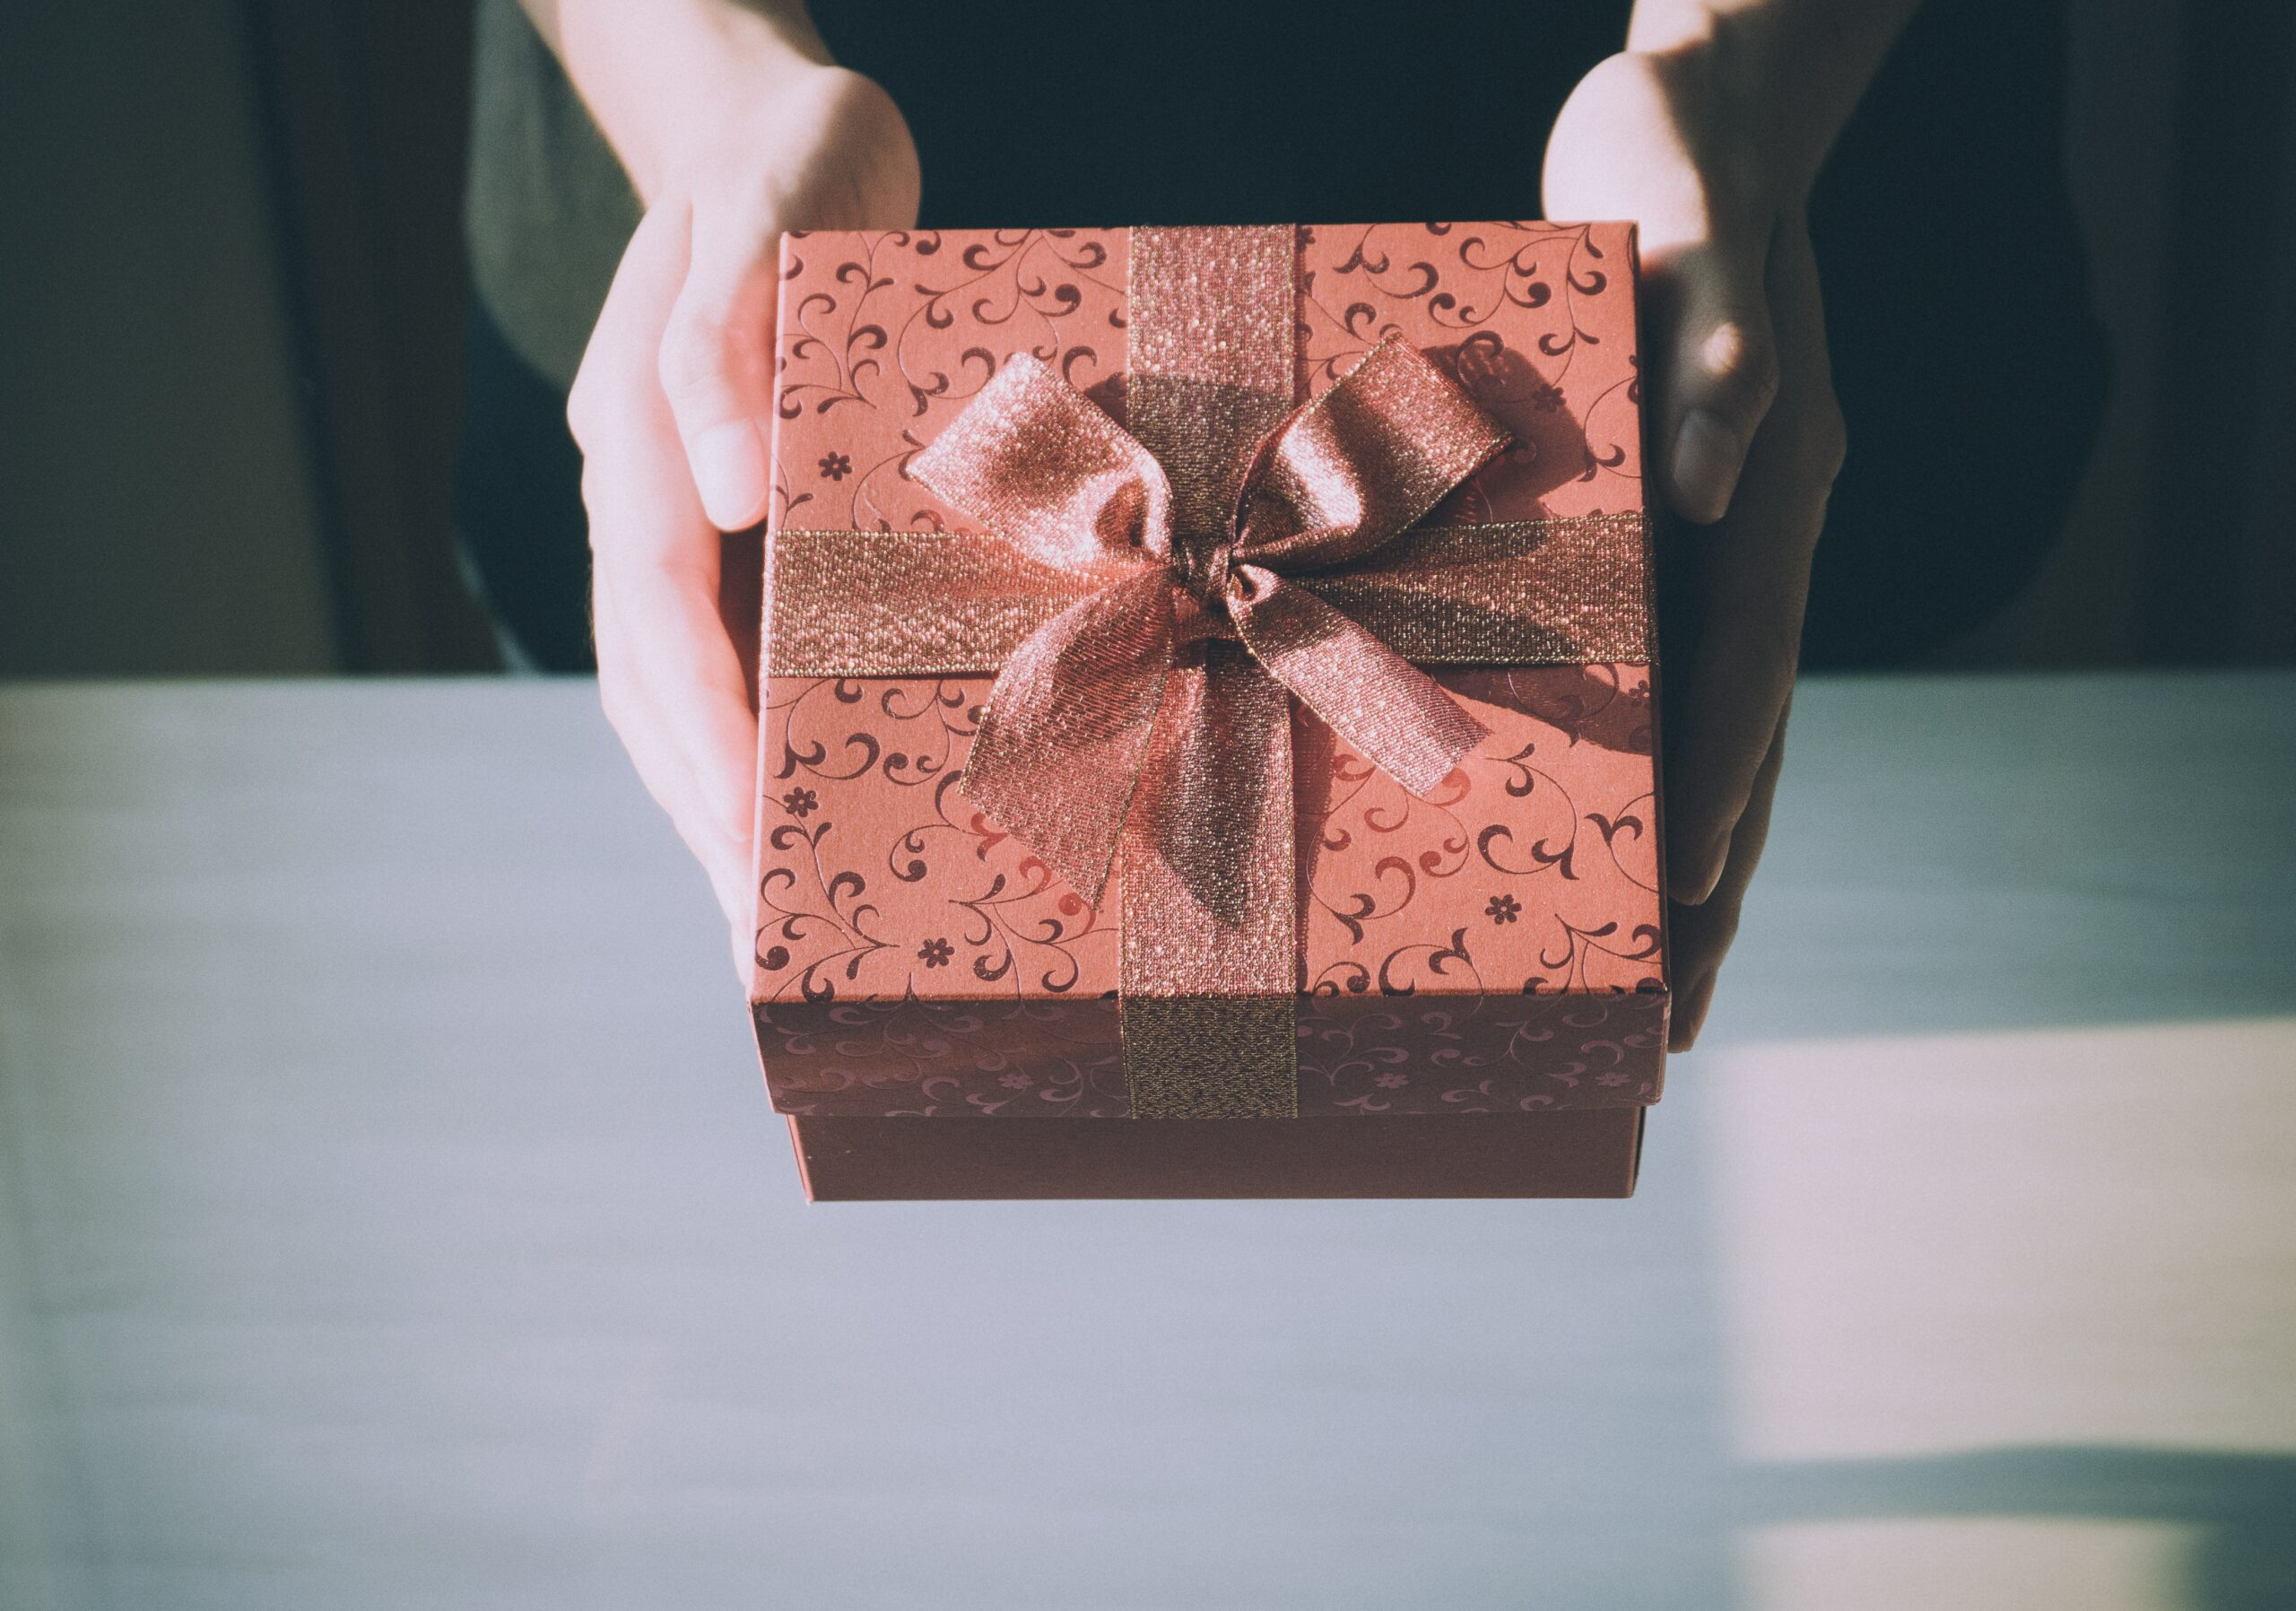 what is a good gift for an autistic child